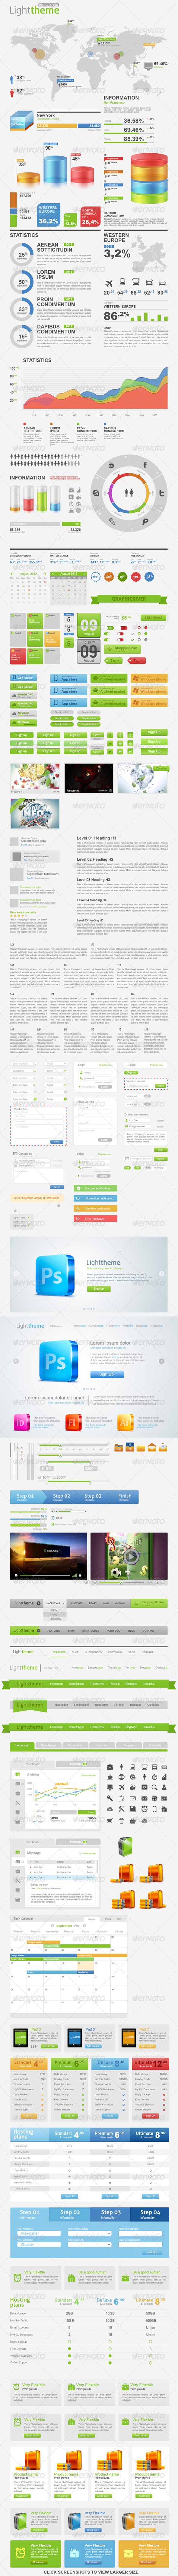 Light Theme Big Pack Web Constructor 1.0 - User Interfaces Web Elements